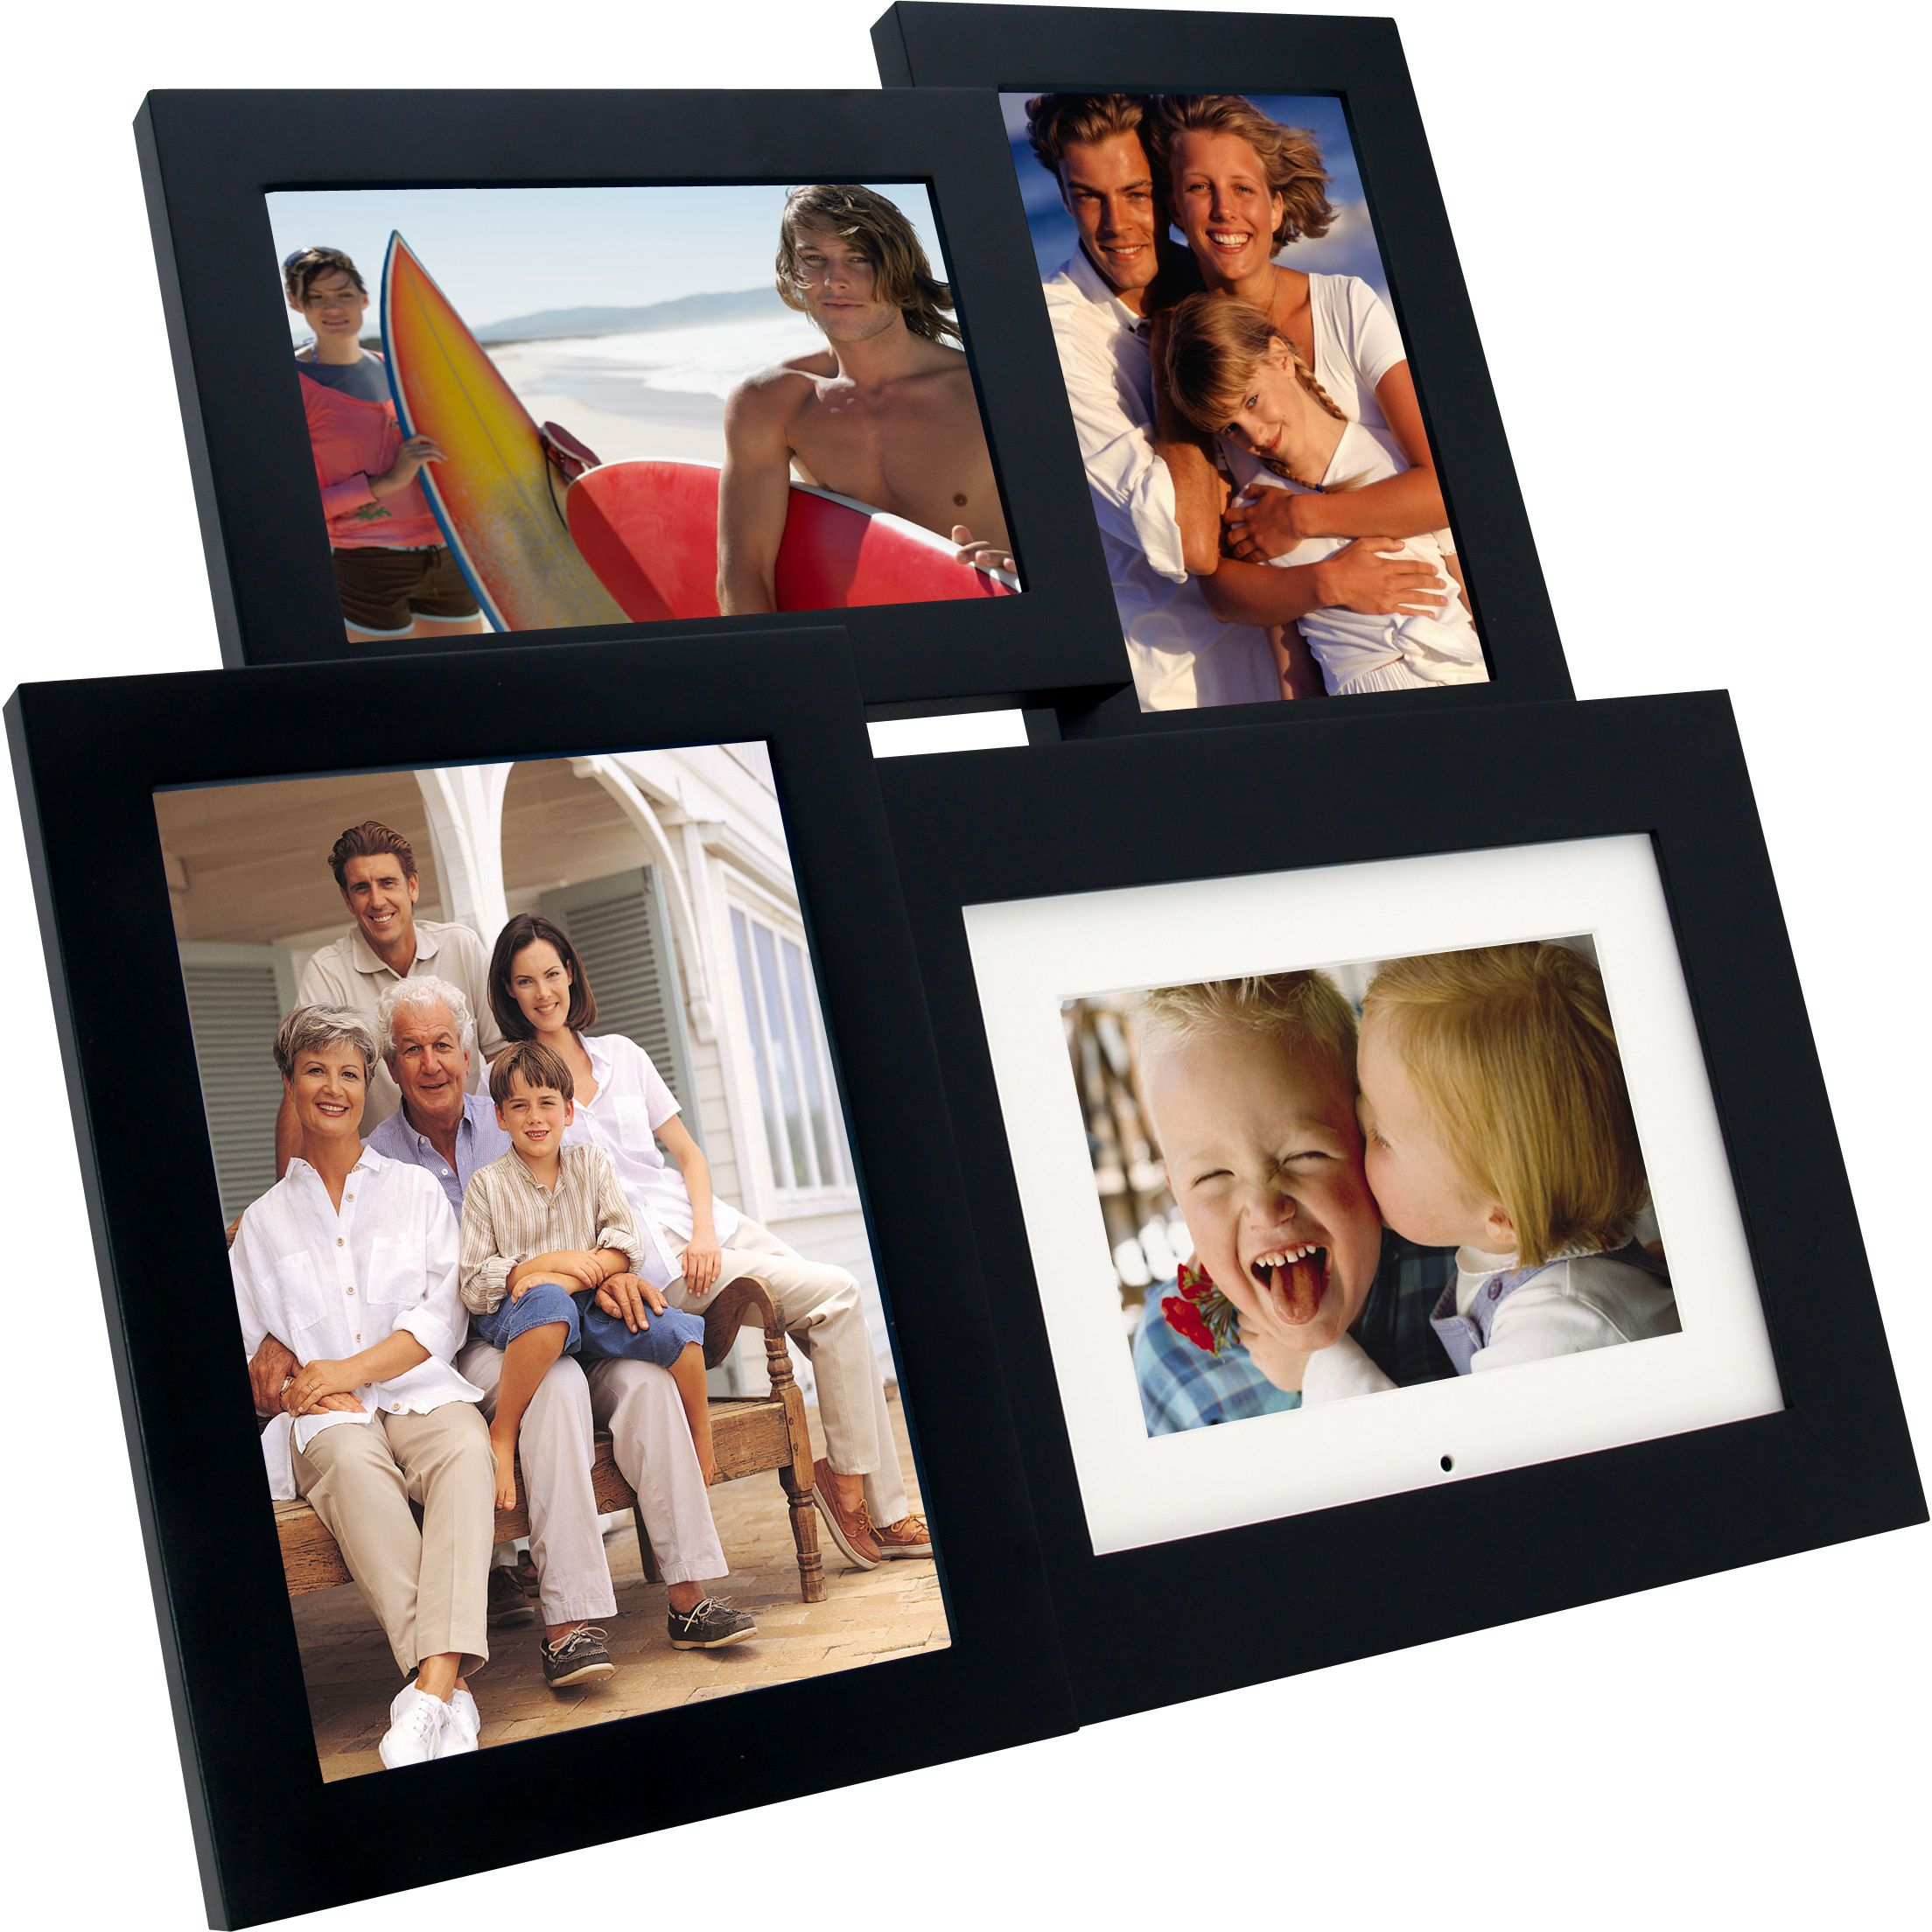 Kmart Digital Photo Frame Pandigital 7 In Lcd Digital Picture Frame With Remote